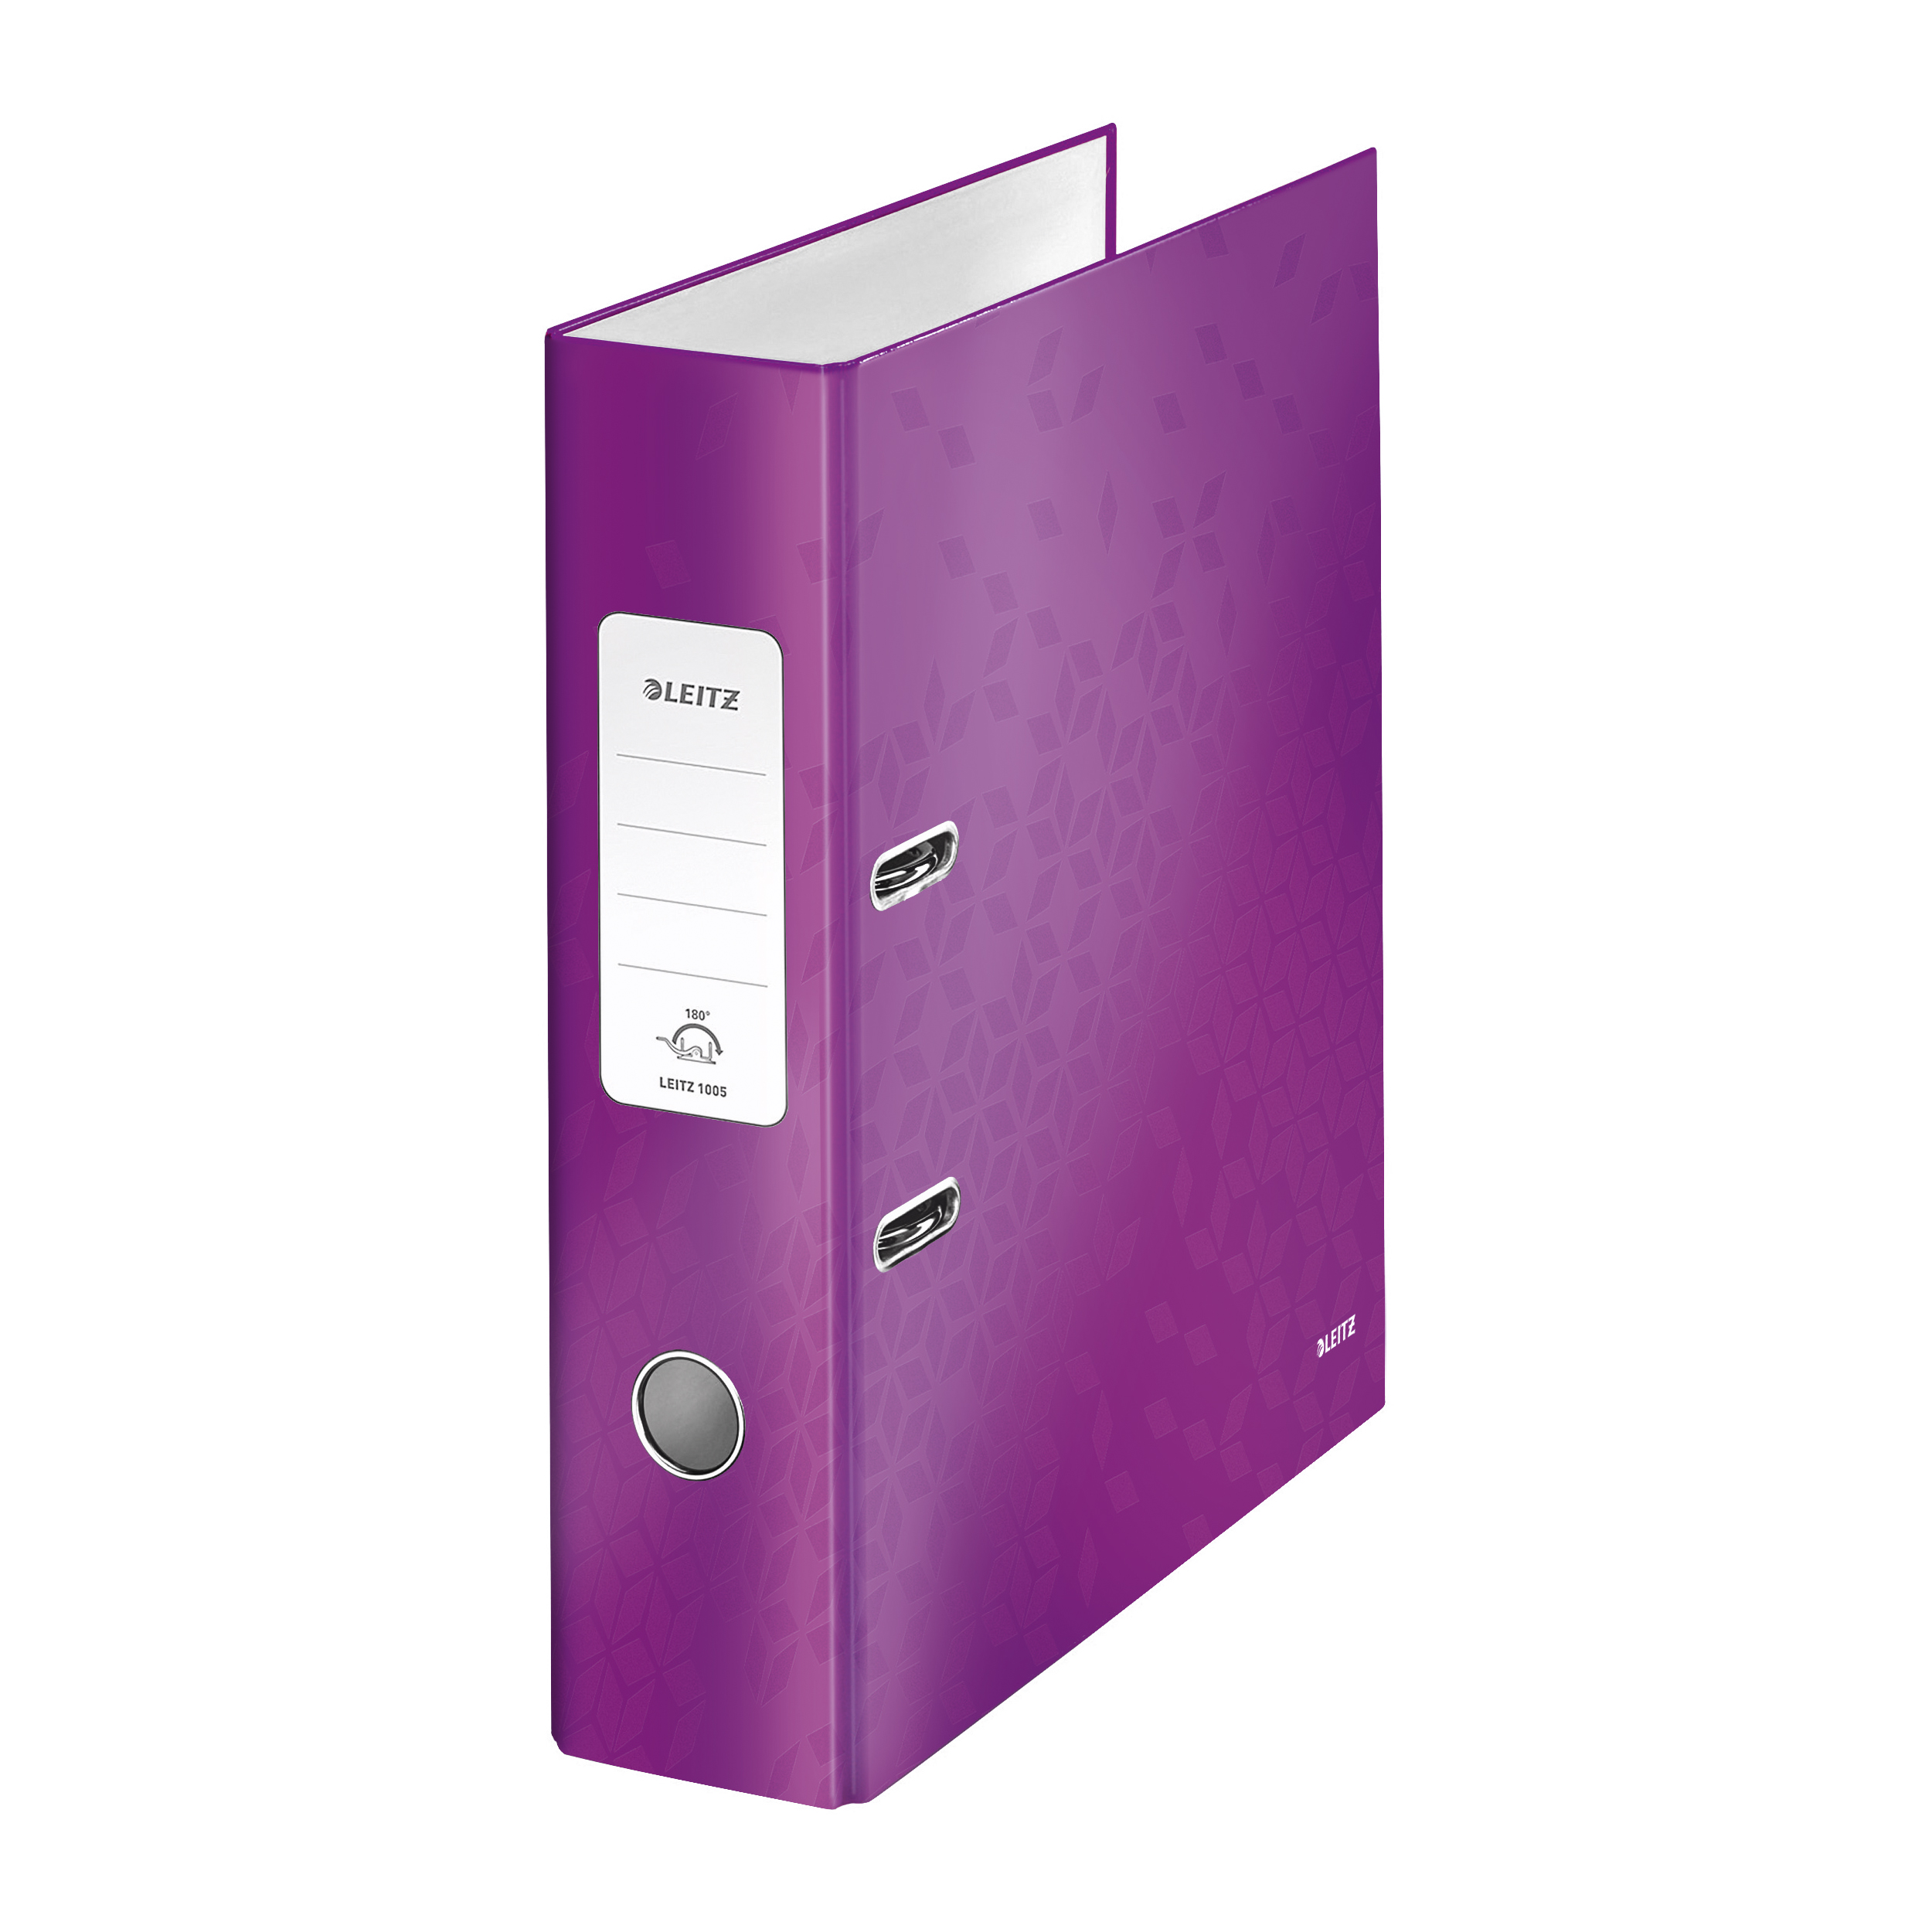 Lever Arch Files Leitz WOW Lever Arch File 80mm Spine for 600 Shts A4 Purple Ref 10050062 Pack 10 REDEMPTION Apr-Jun20